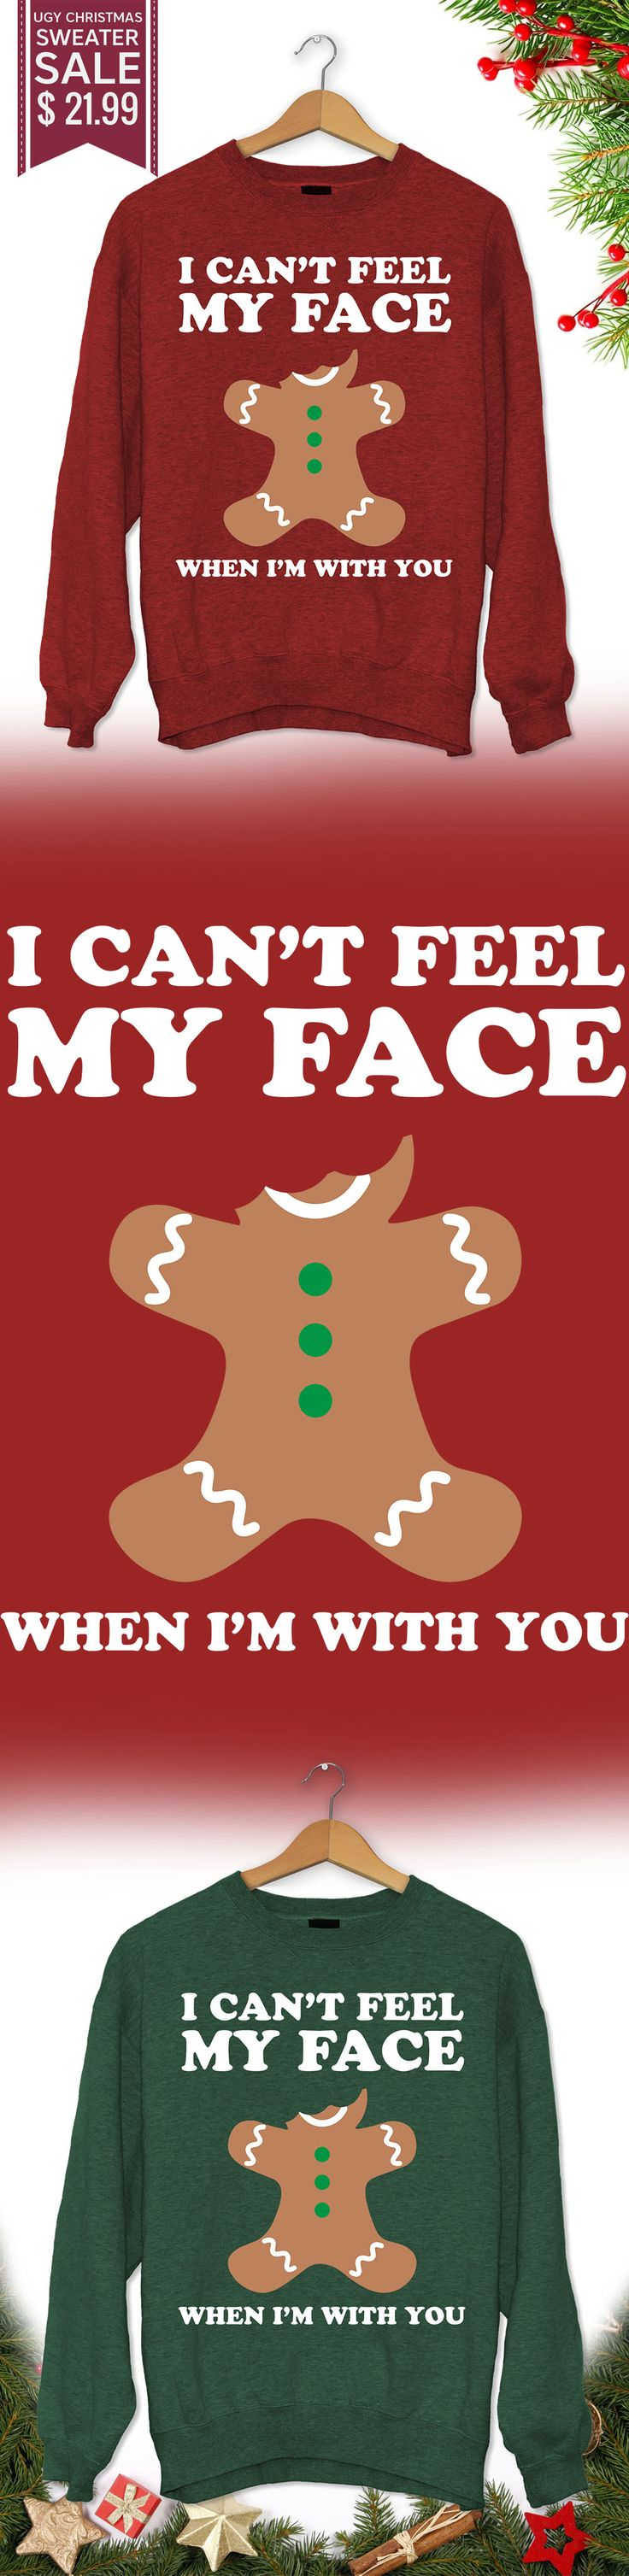 Christmas Gift I can't feel my face - Get this limited edition ugly Christmas Sweater just in time for the holidays! Buy 2 or more, save on shipping!